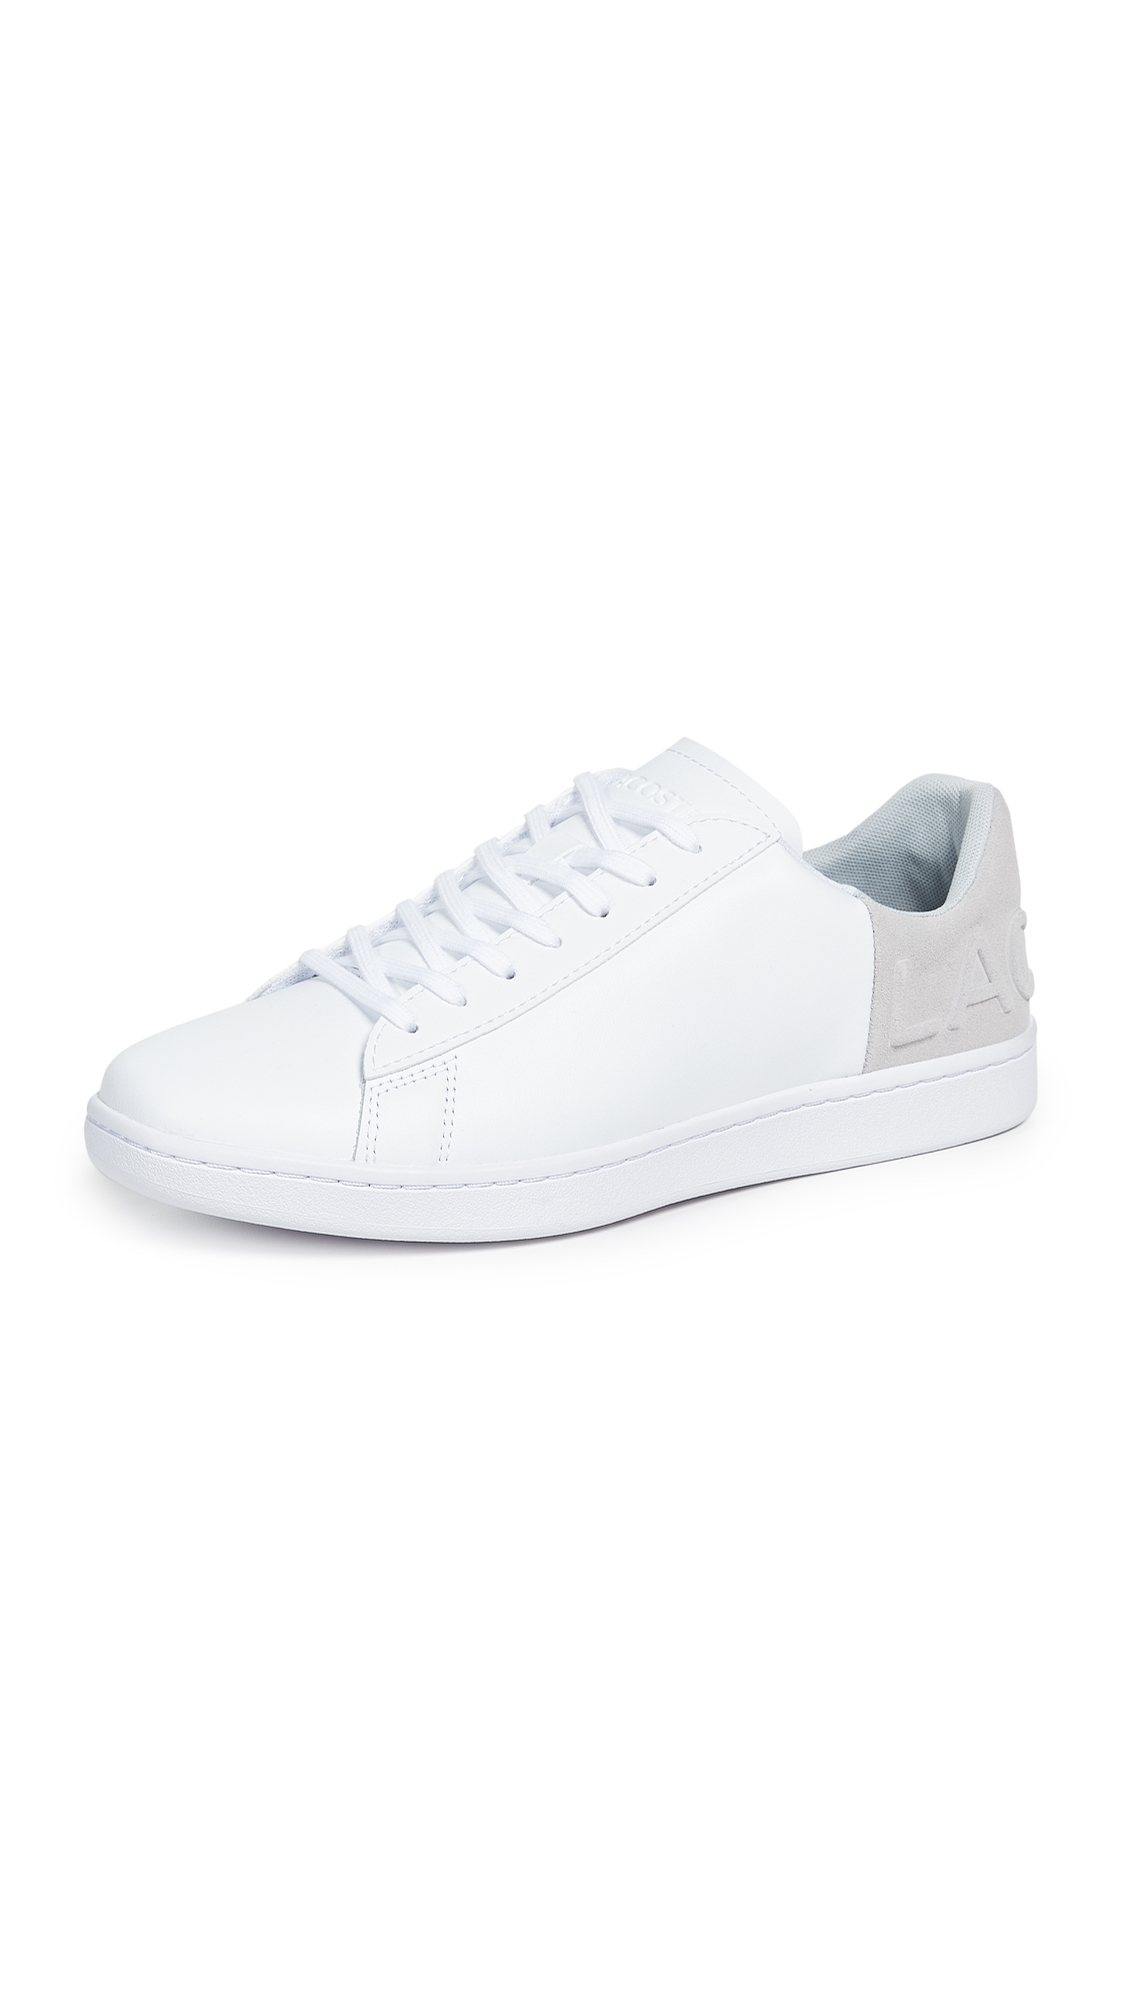 f4b2b56cf4f261 Lacoste Carnaby Evo 318 6 Sneakers In White Light Grey